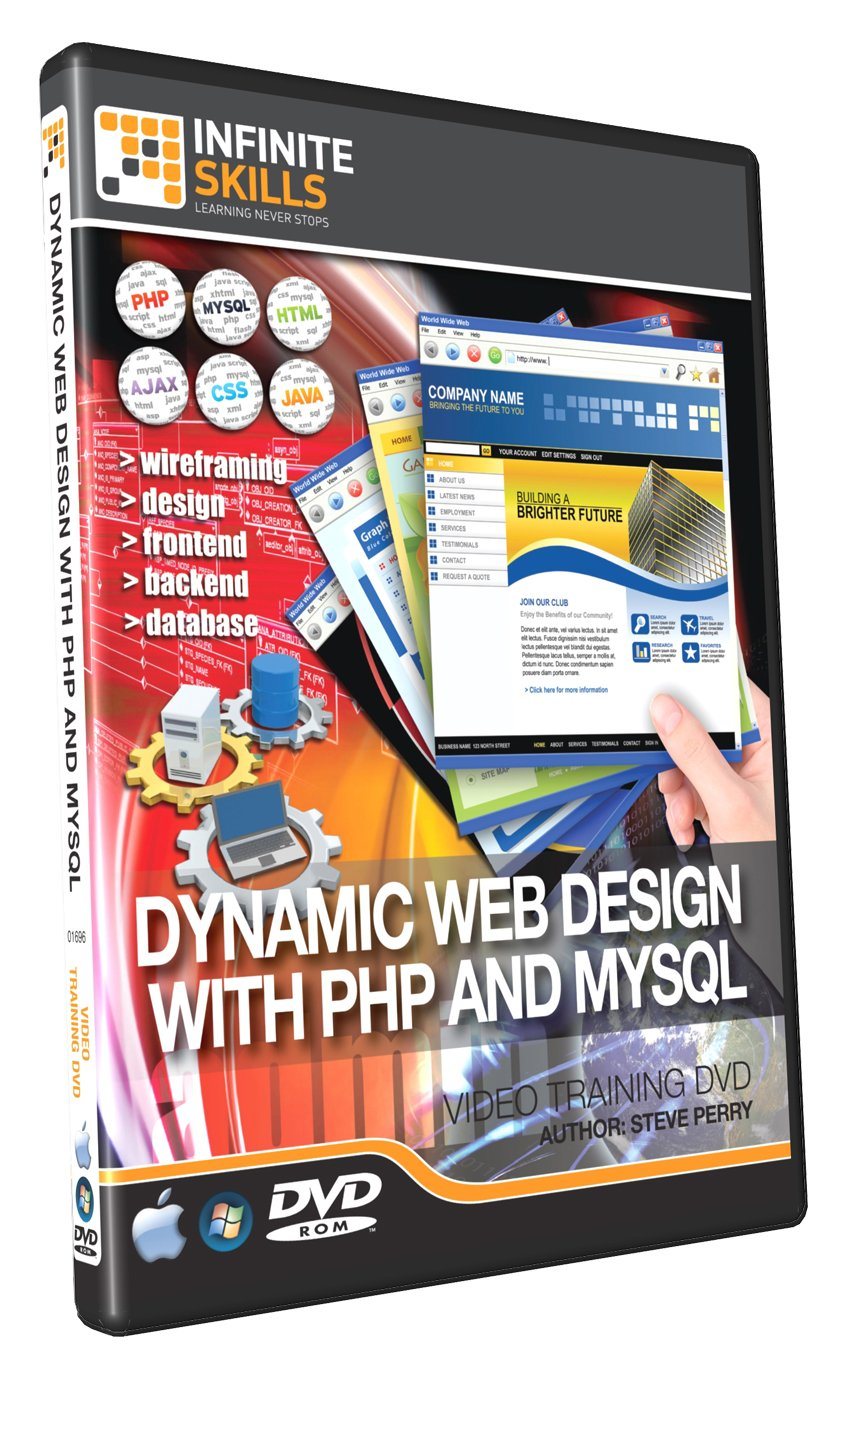 Amazoncom Learning Dynamic Web Design With PHP And MySQL - Us zip code validation php